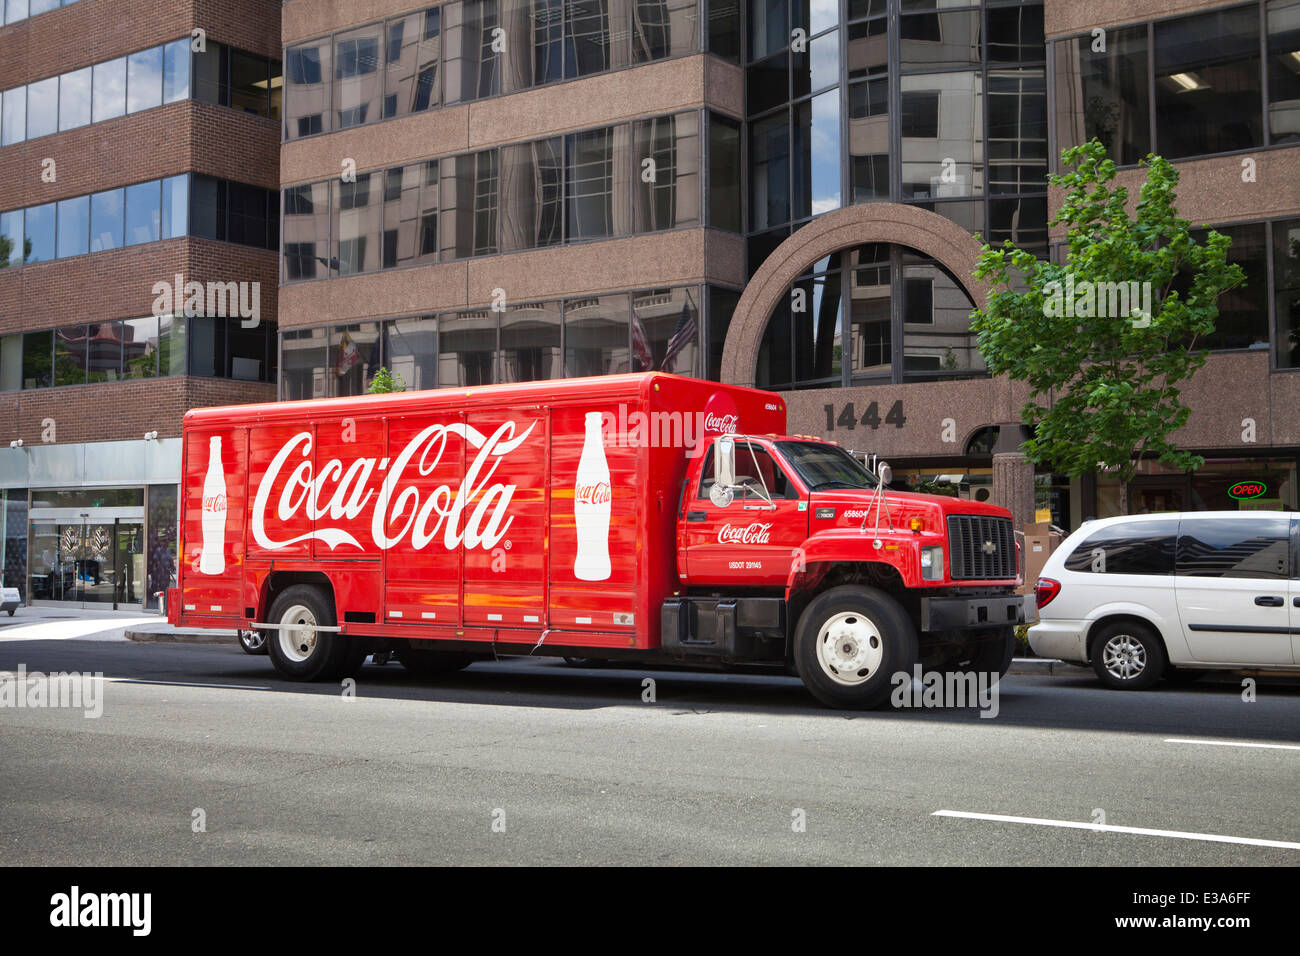 Coca-Cola delivery truck parked outside office building - Washington, DC USA - Stock Image